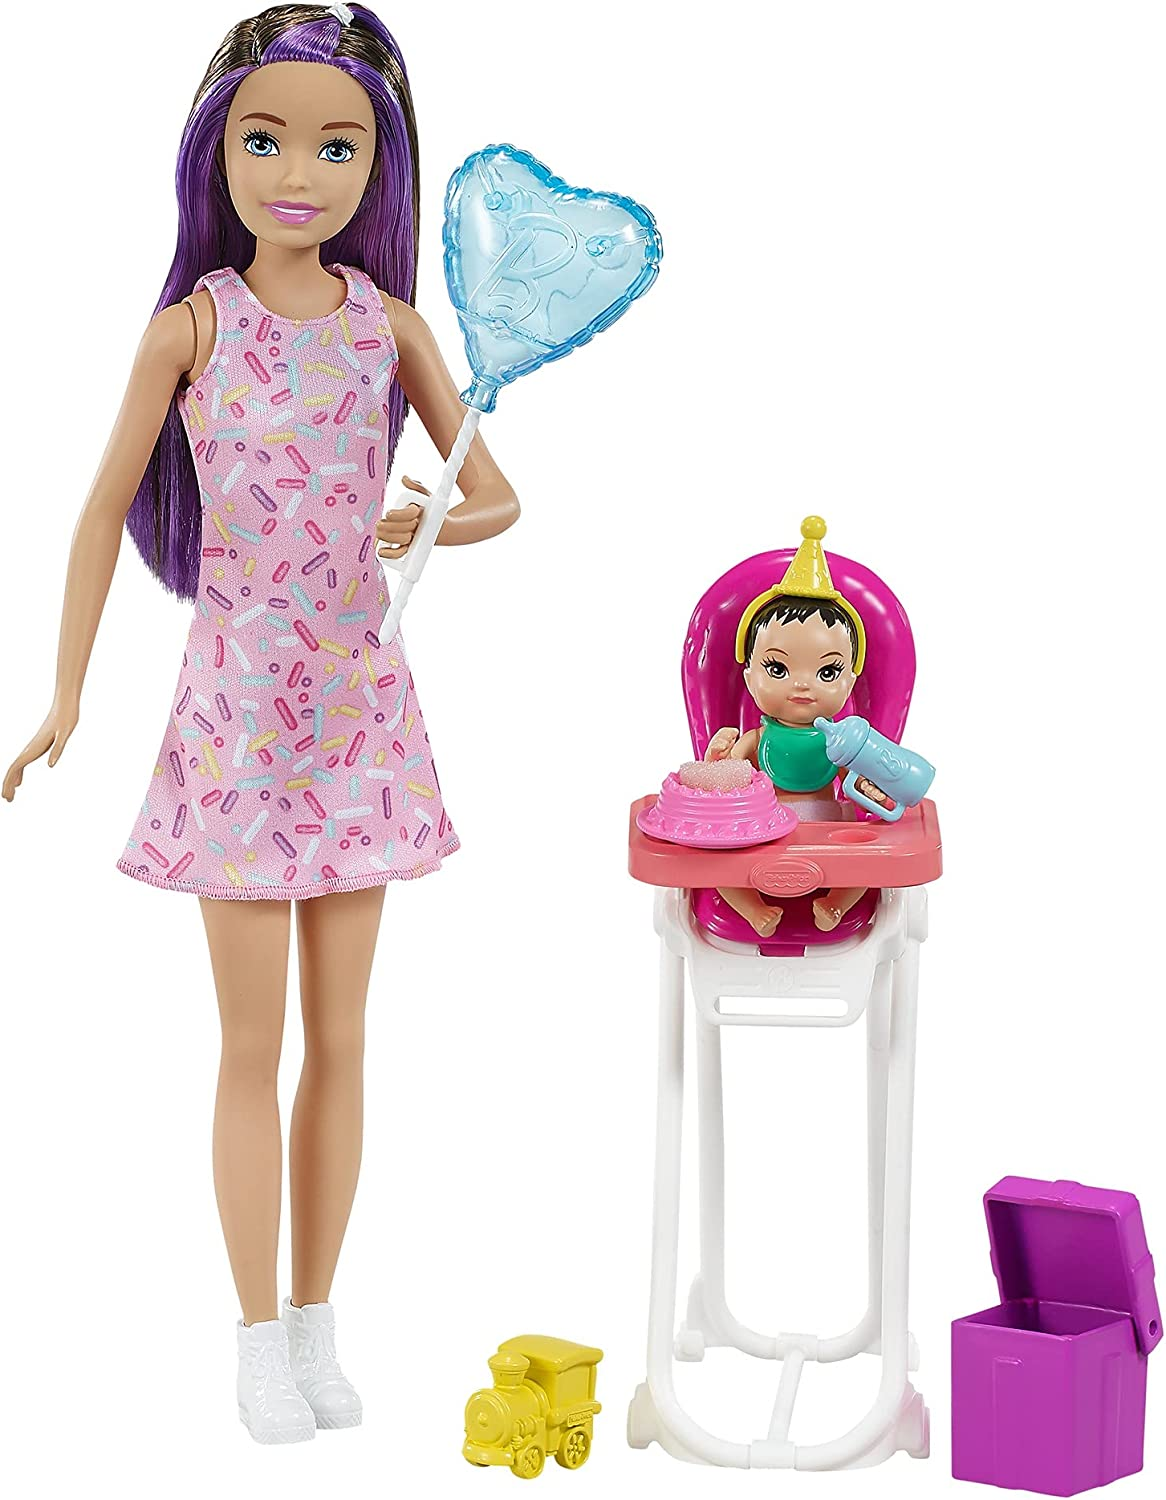 Barbie Skipper Babysitters Inc. Dolls & Playset with Babysitting Skipper Doll, Color-Change Baby Doll, High Chair & Party-Themed Accessories for Kids 3 to 7 Years Old